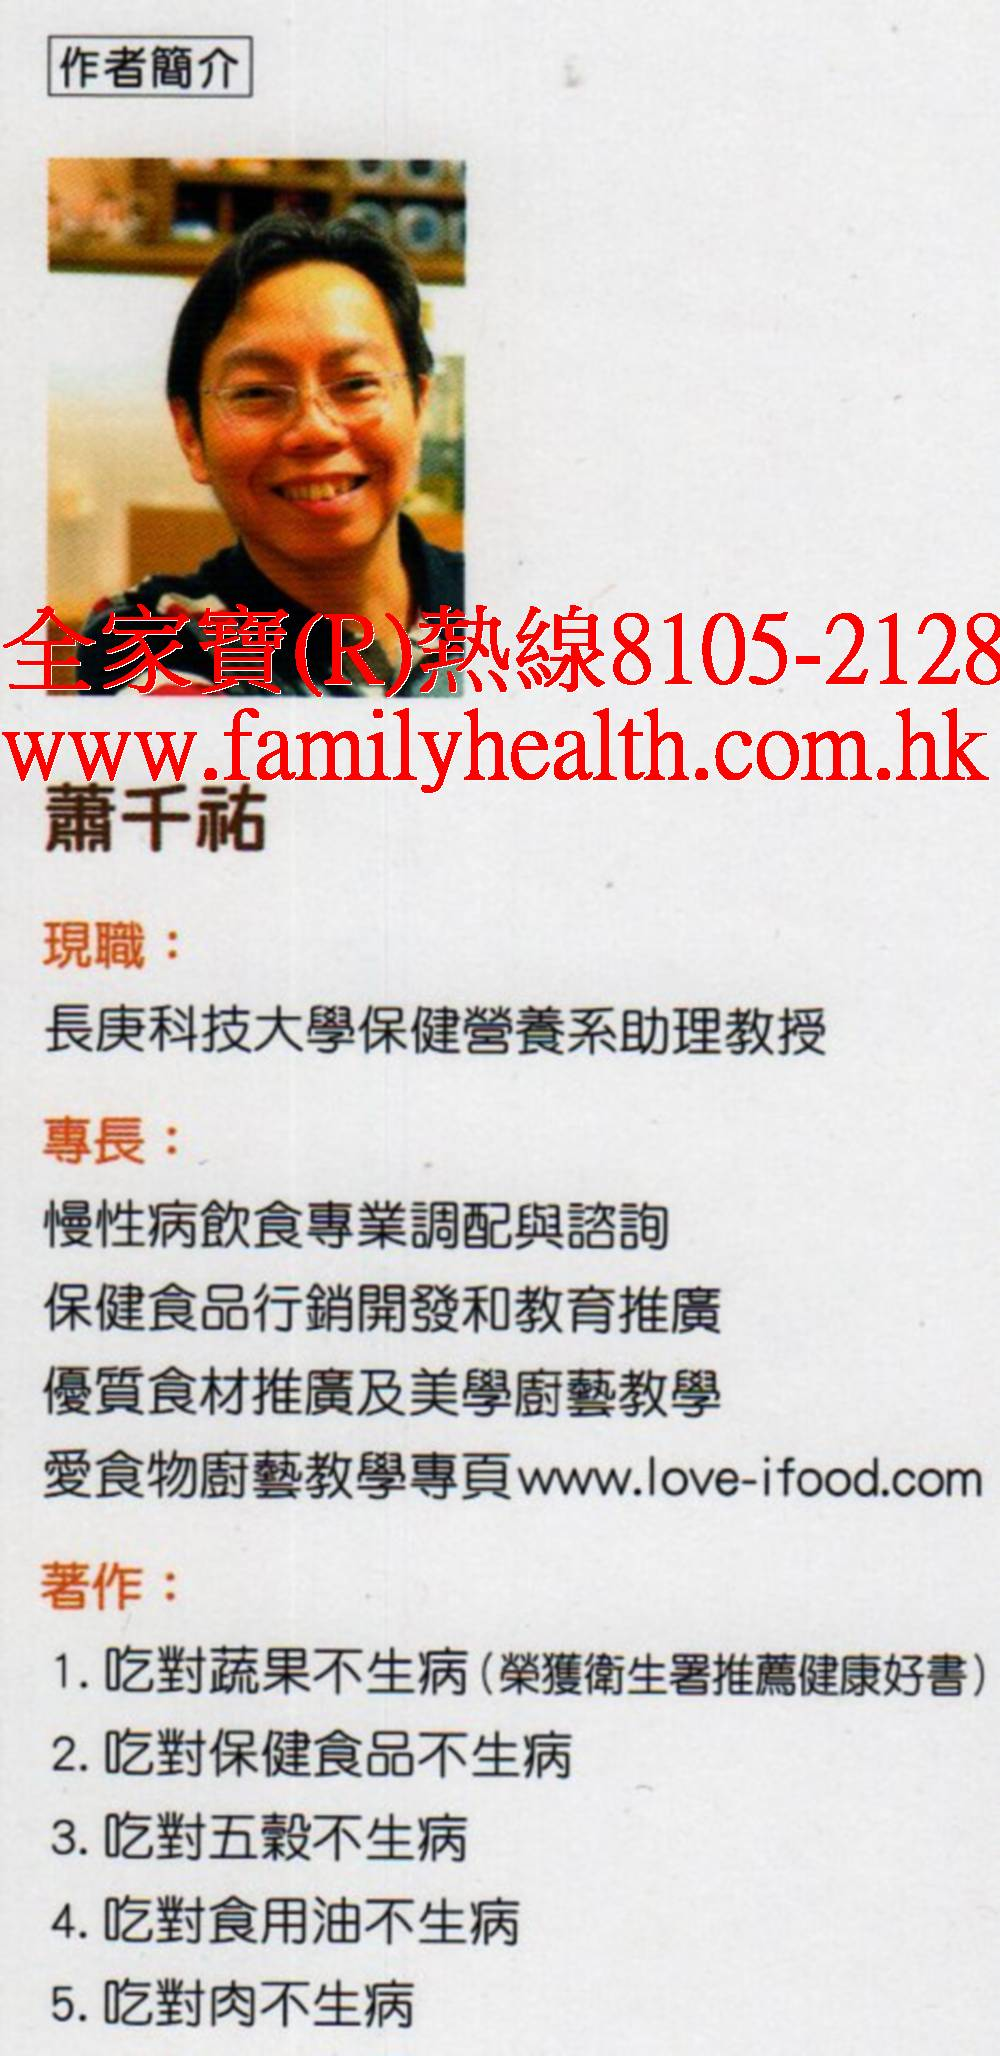 http://www.familyhealth.com.hk/files/full/971_2.jpg